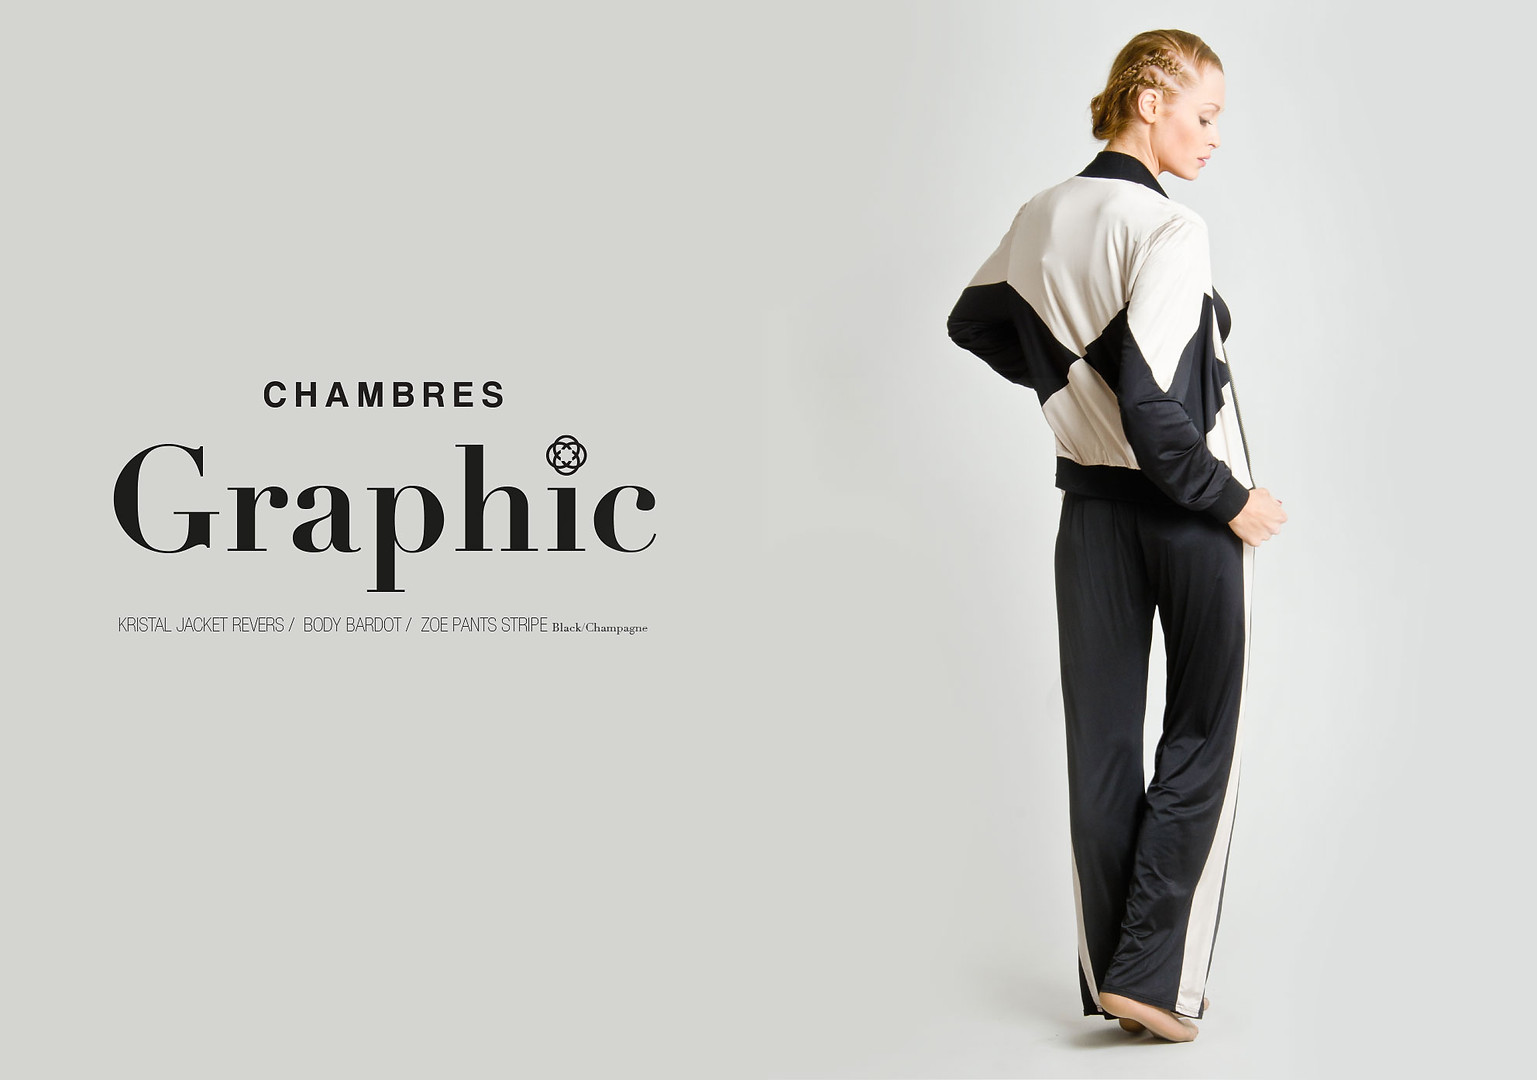 chambres-ic-graphic.jpg